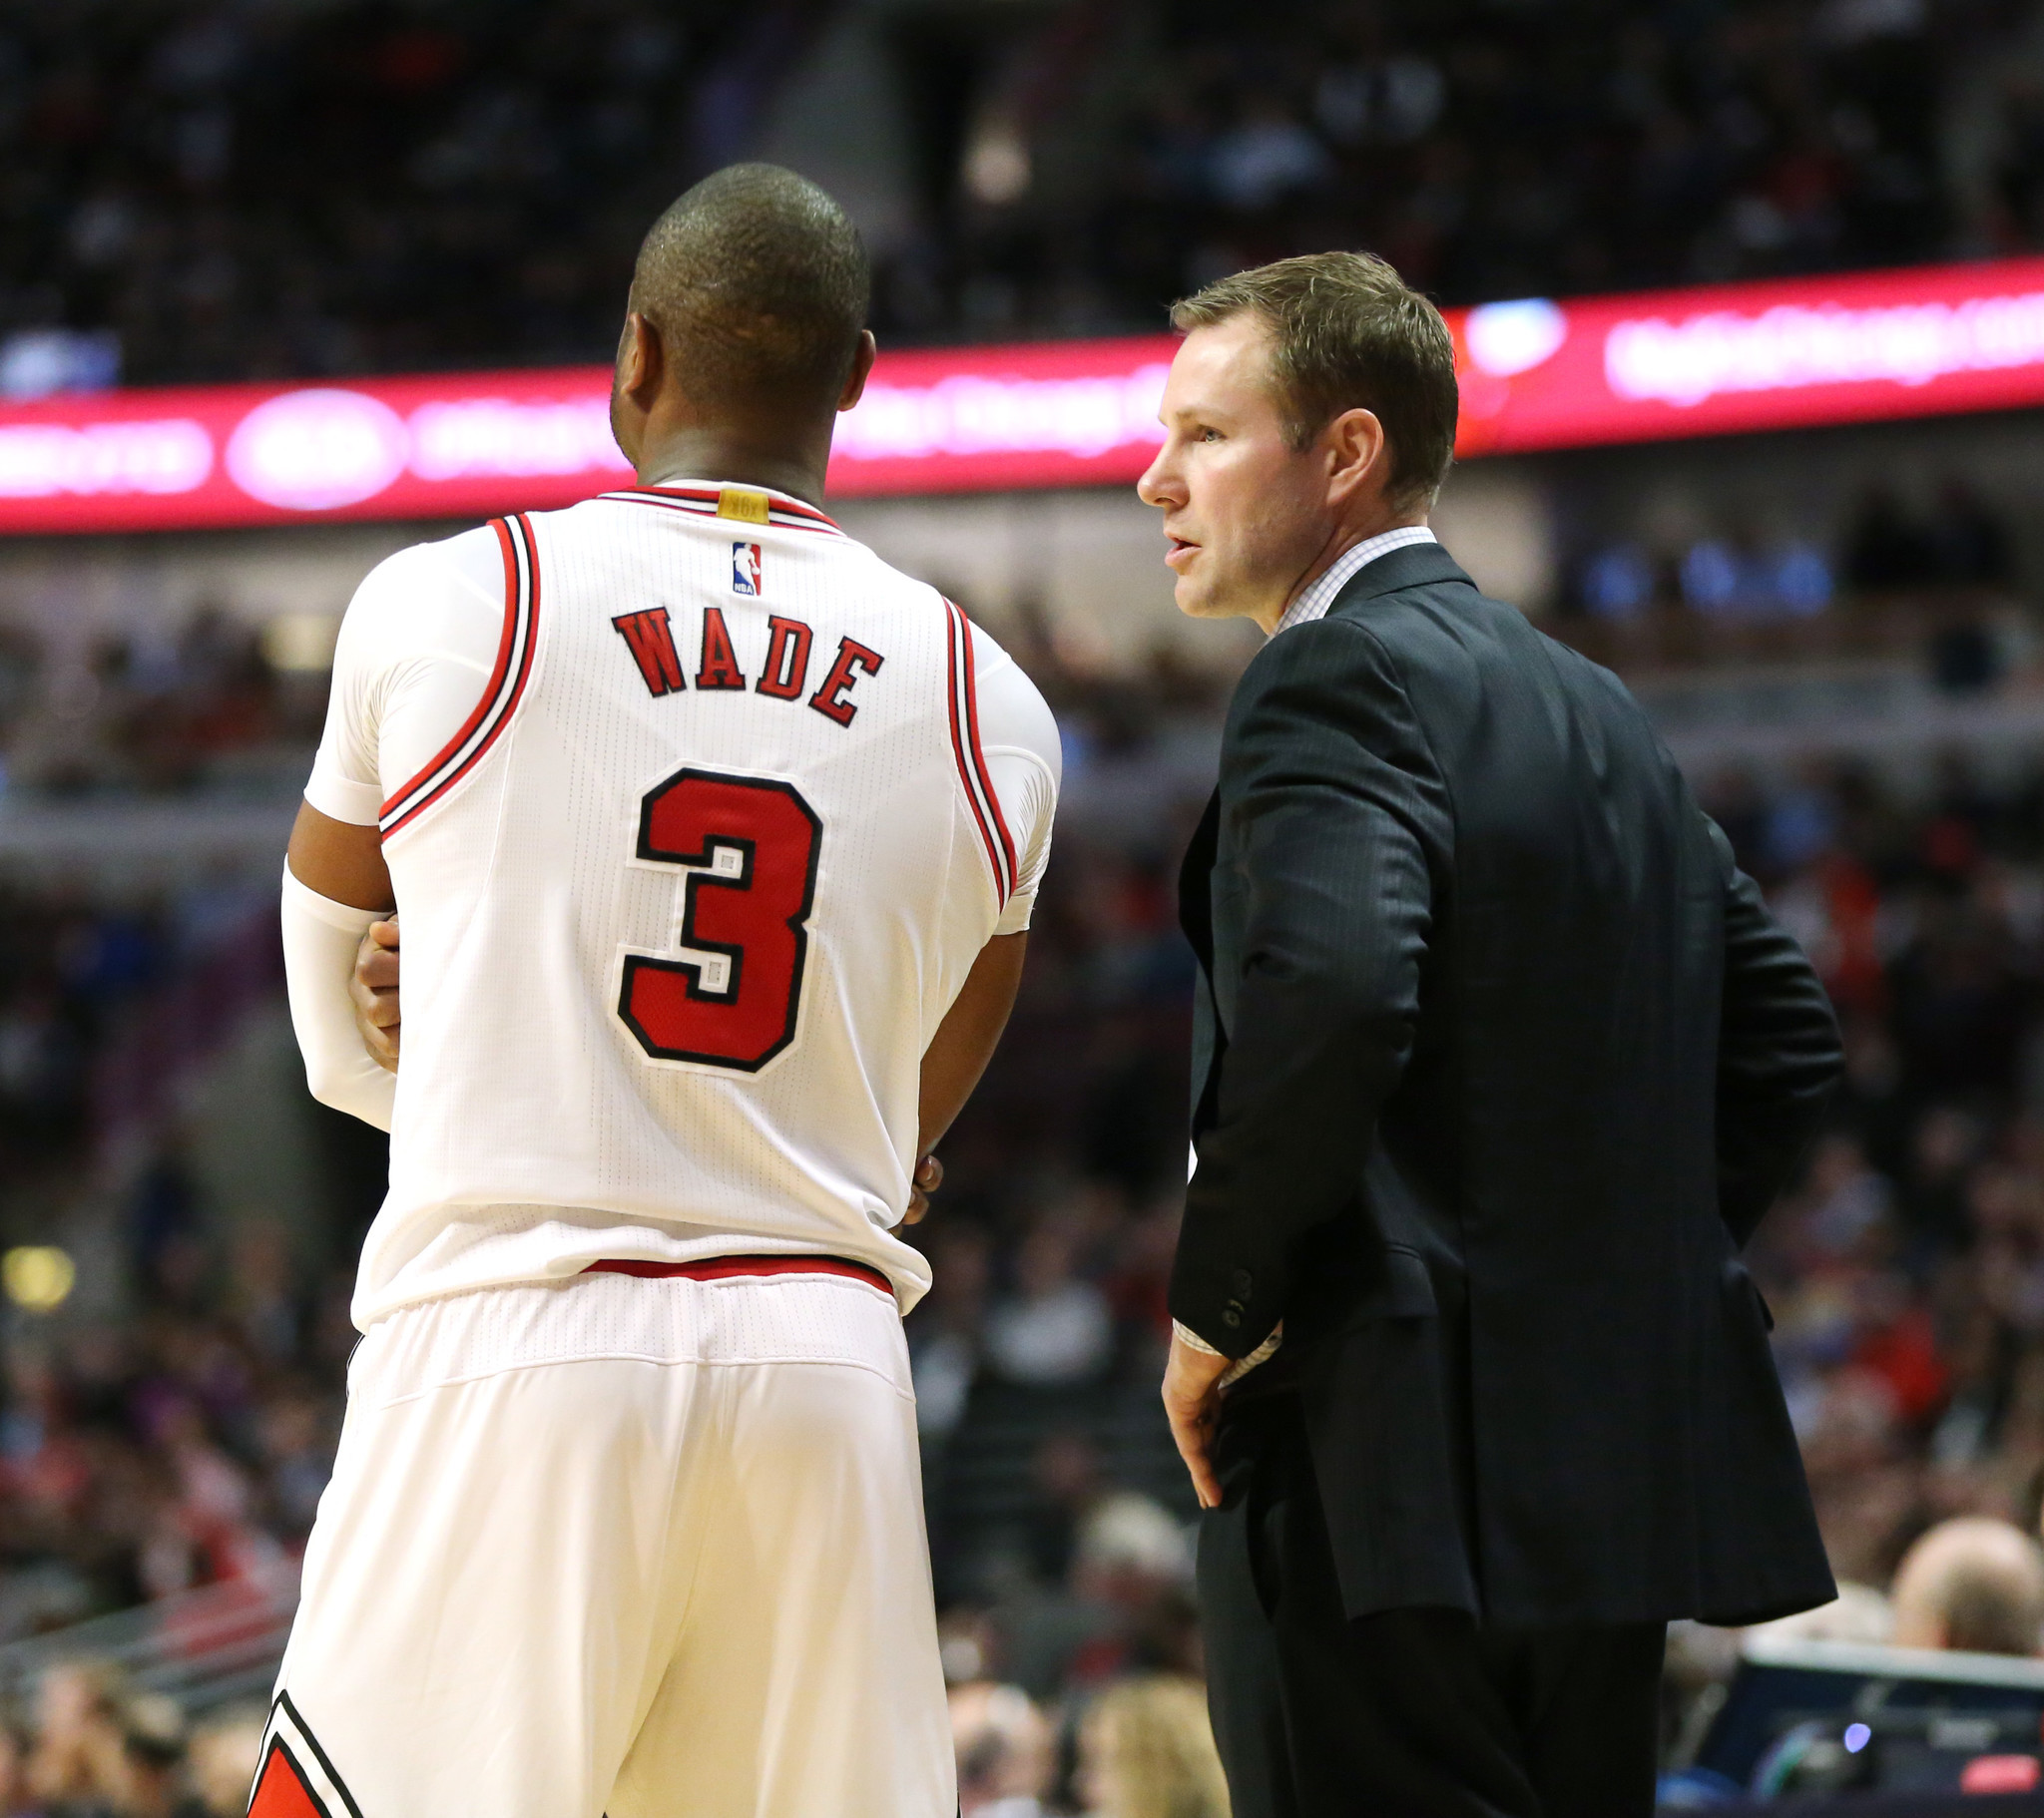 ct-dwyane-wade-supports-fred-hoiberg-spt-0430-20170429